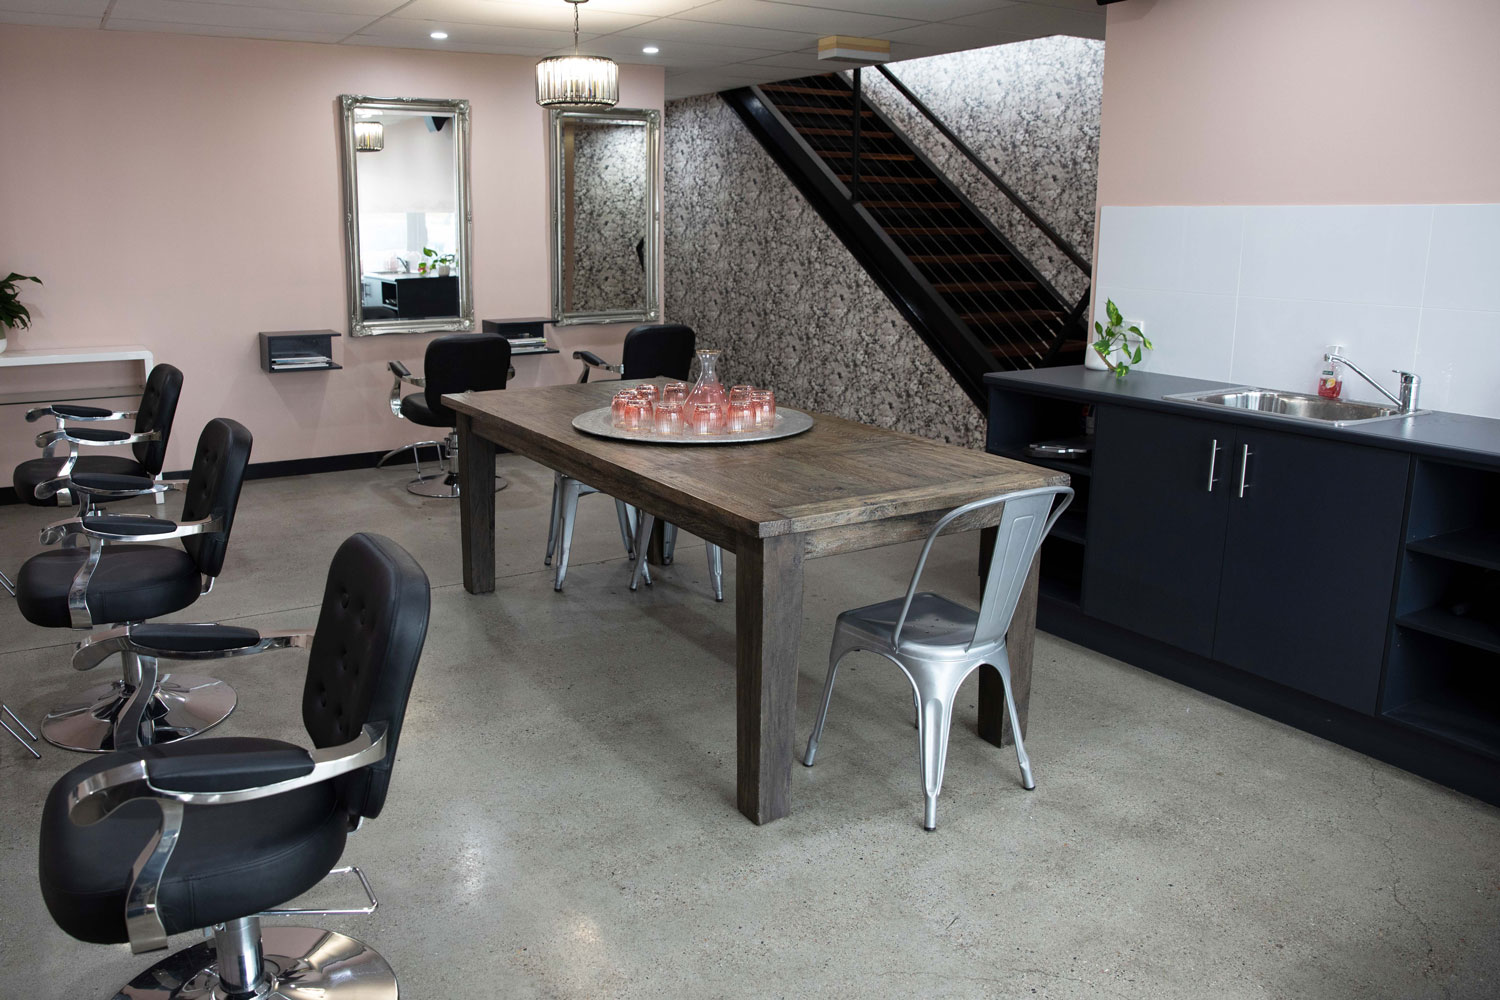 bhair salon basement overview